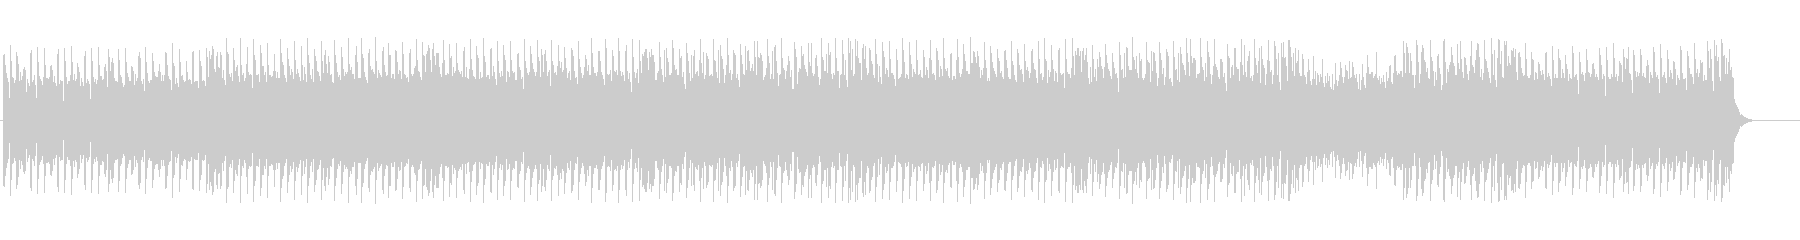 Fantastic and cute techno BGM's unreproduced waveform